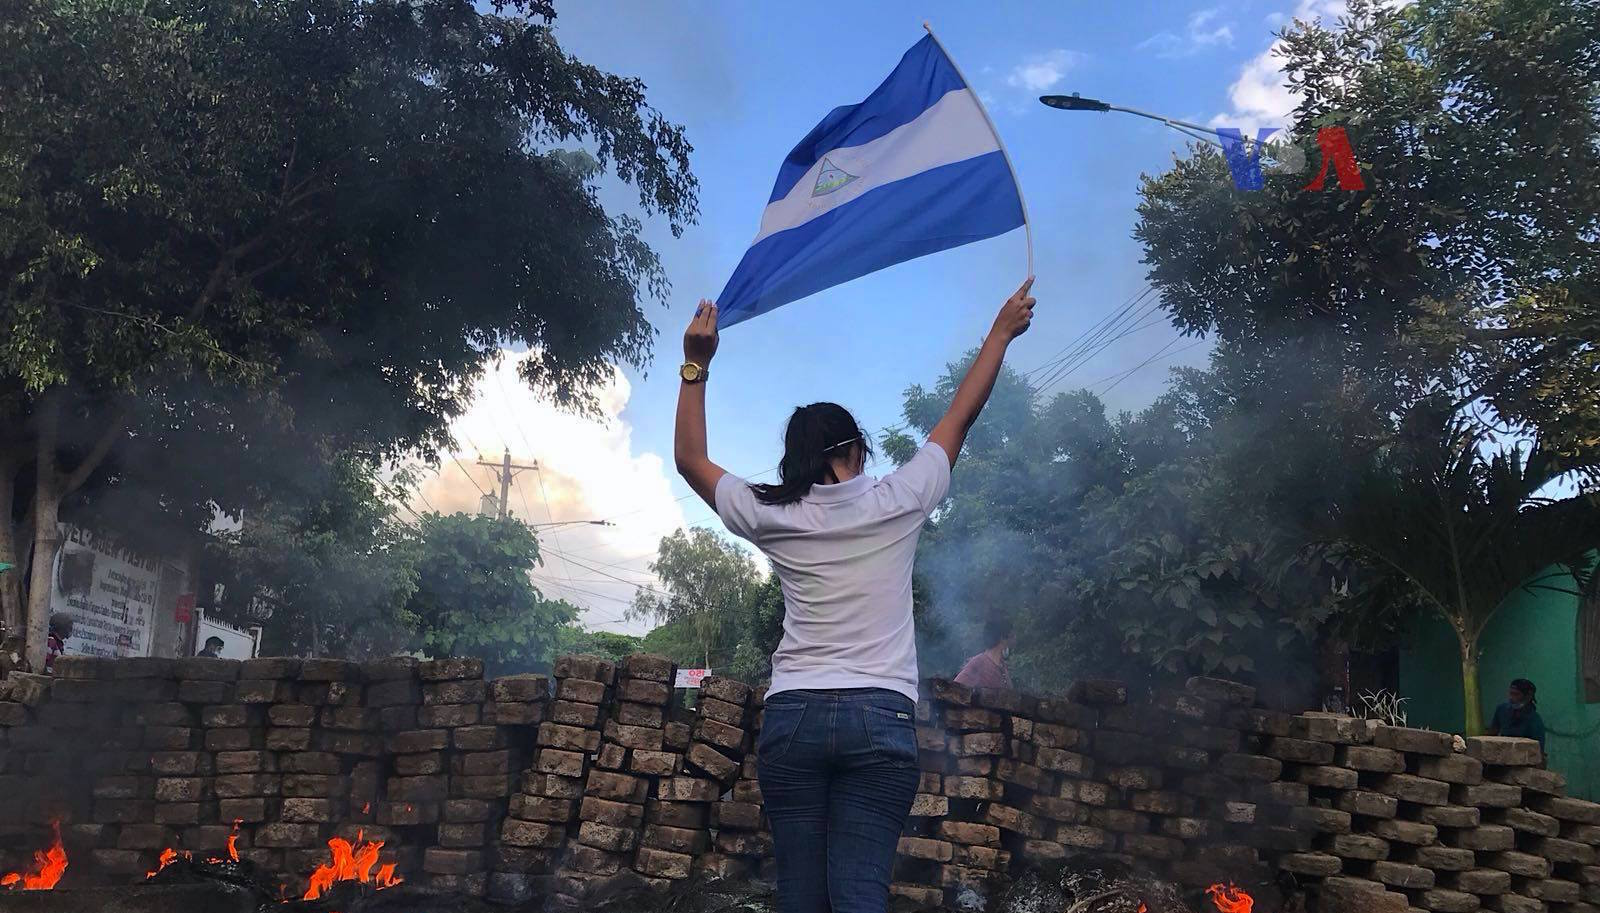 Nicaragua: A Turning Point?